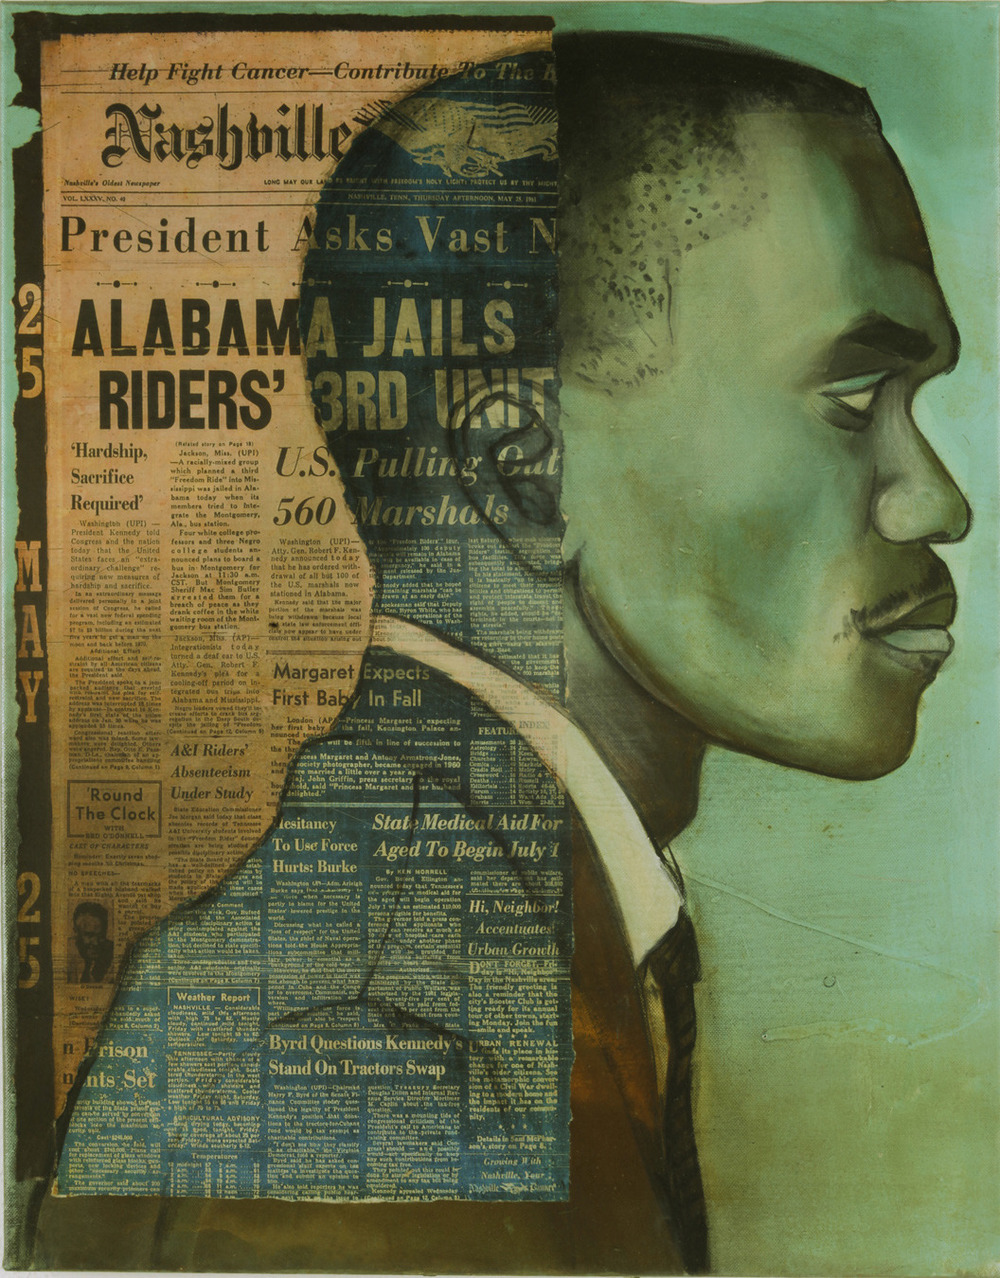 Arrested May 24, 1961 in Jackson, MS: Frank Holloway